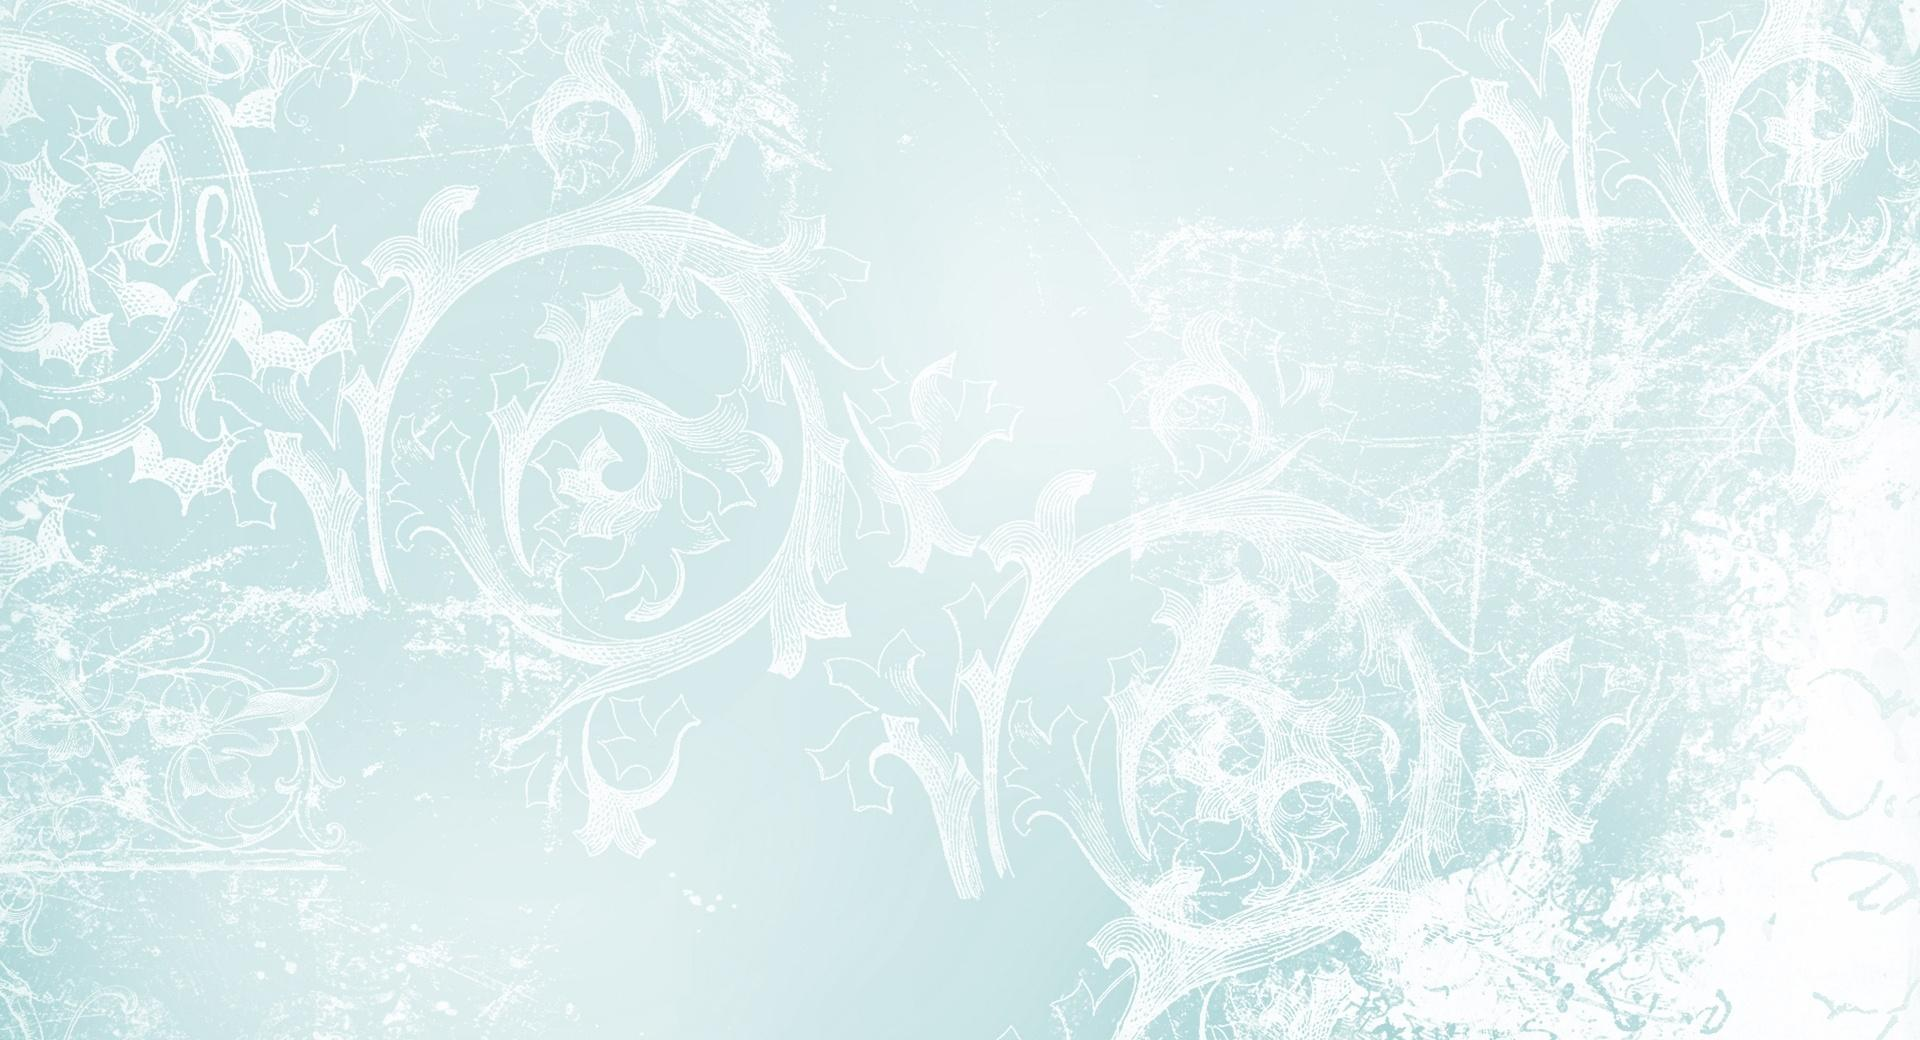 Abstract Ice Flowers wallpapers HD quality